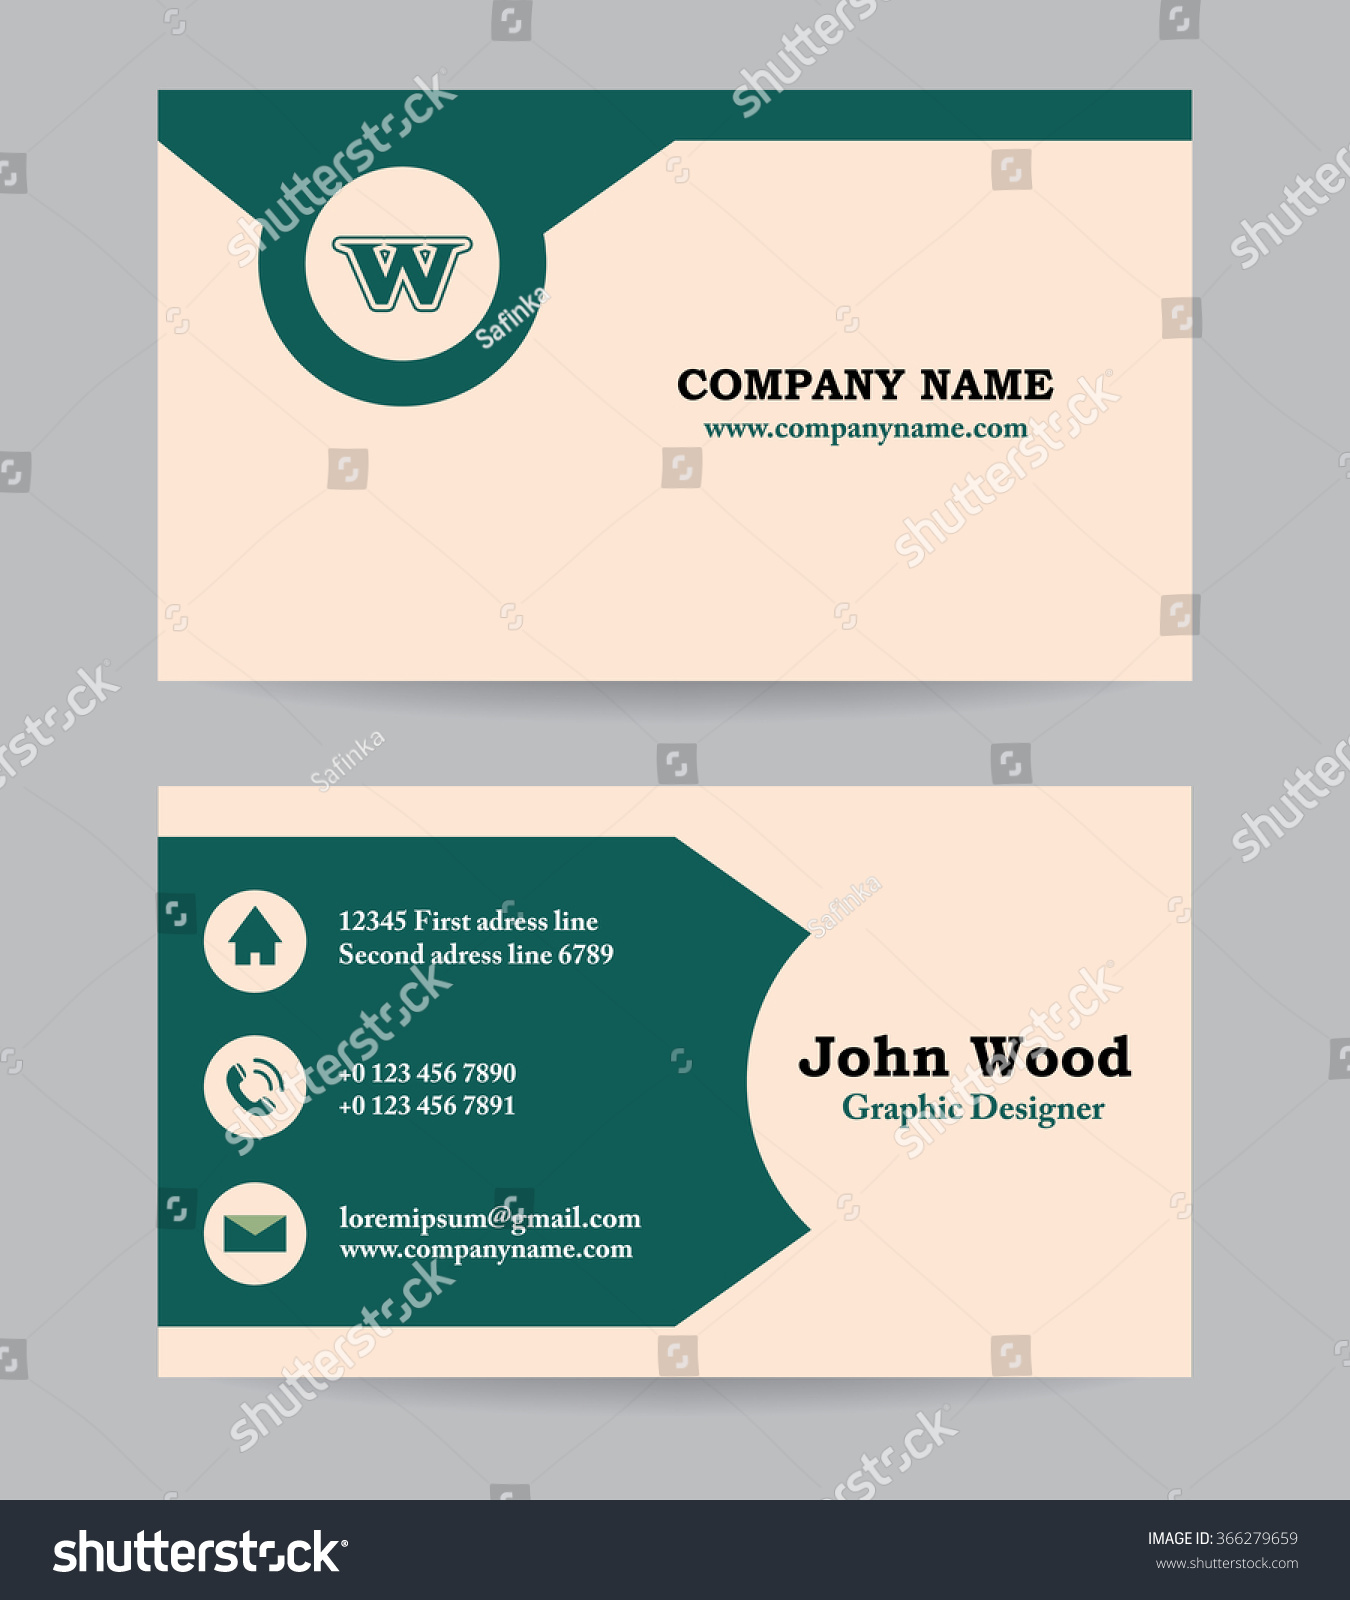 personal information card template